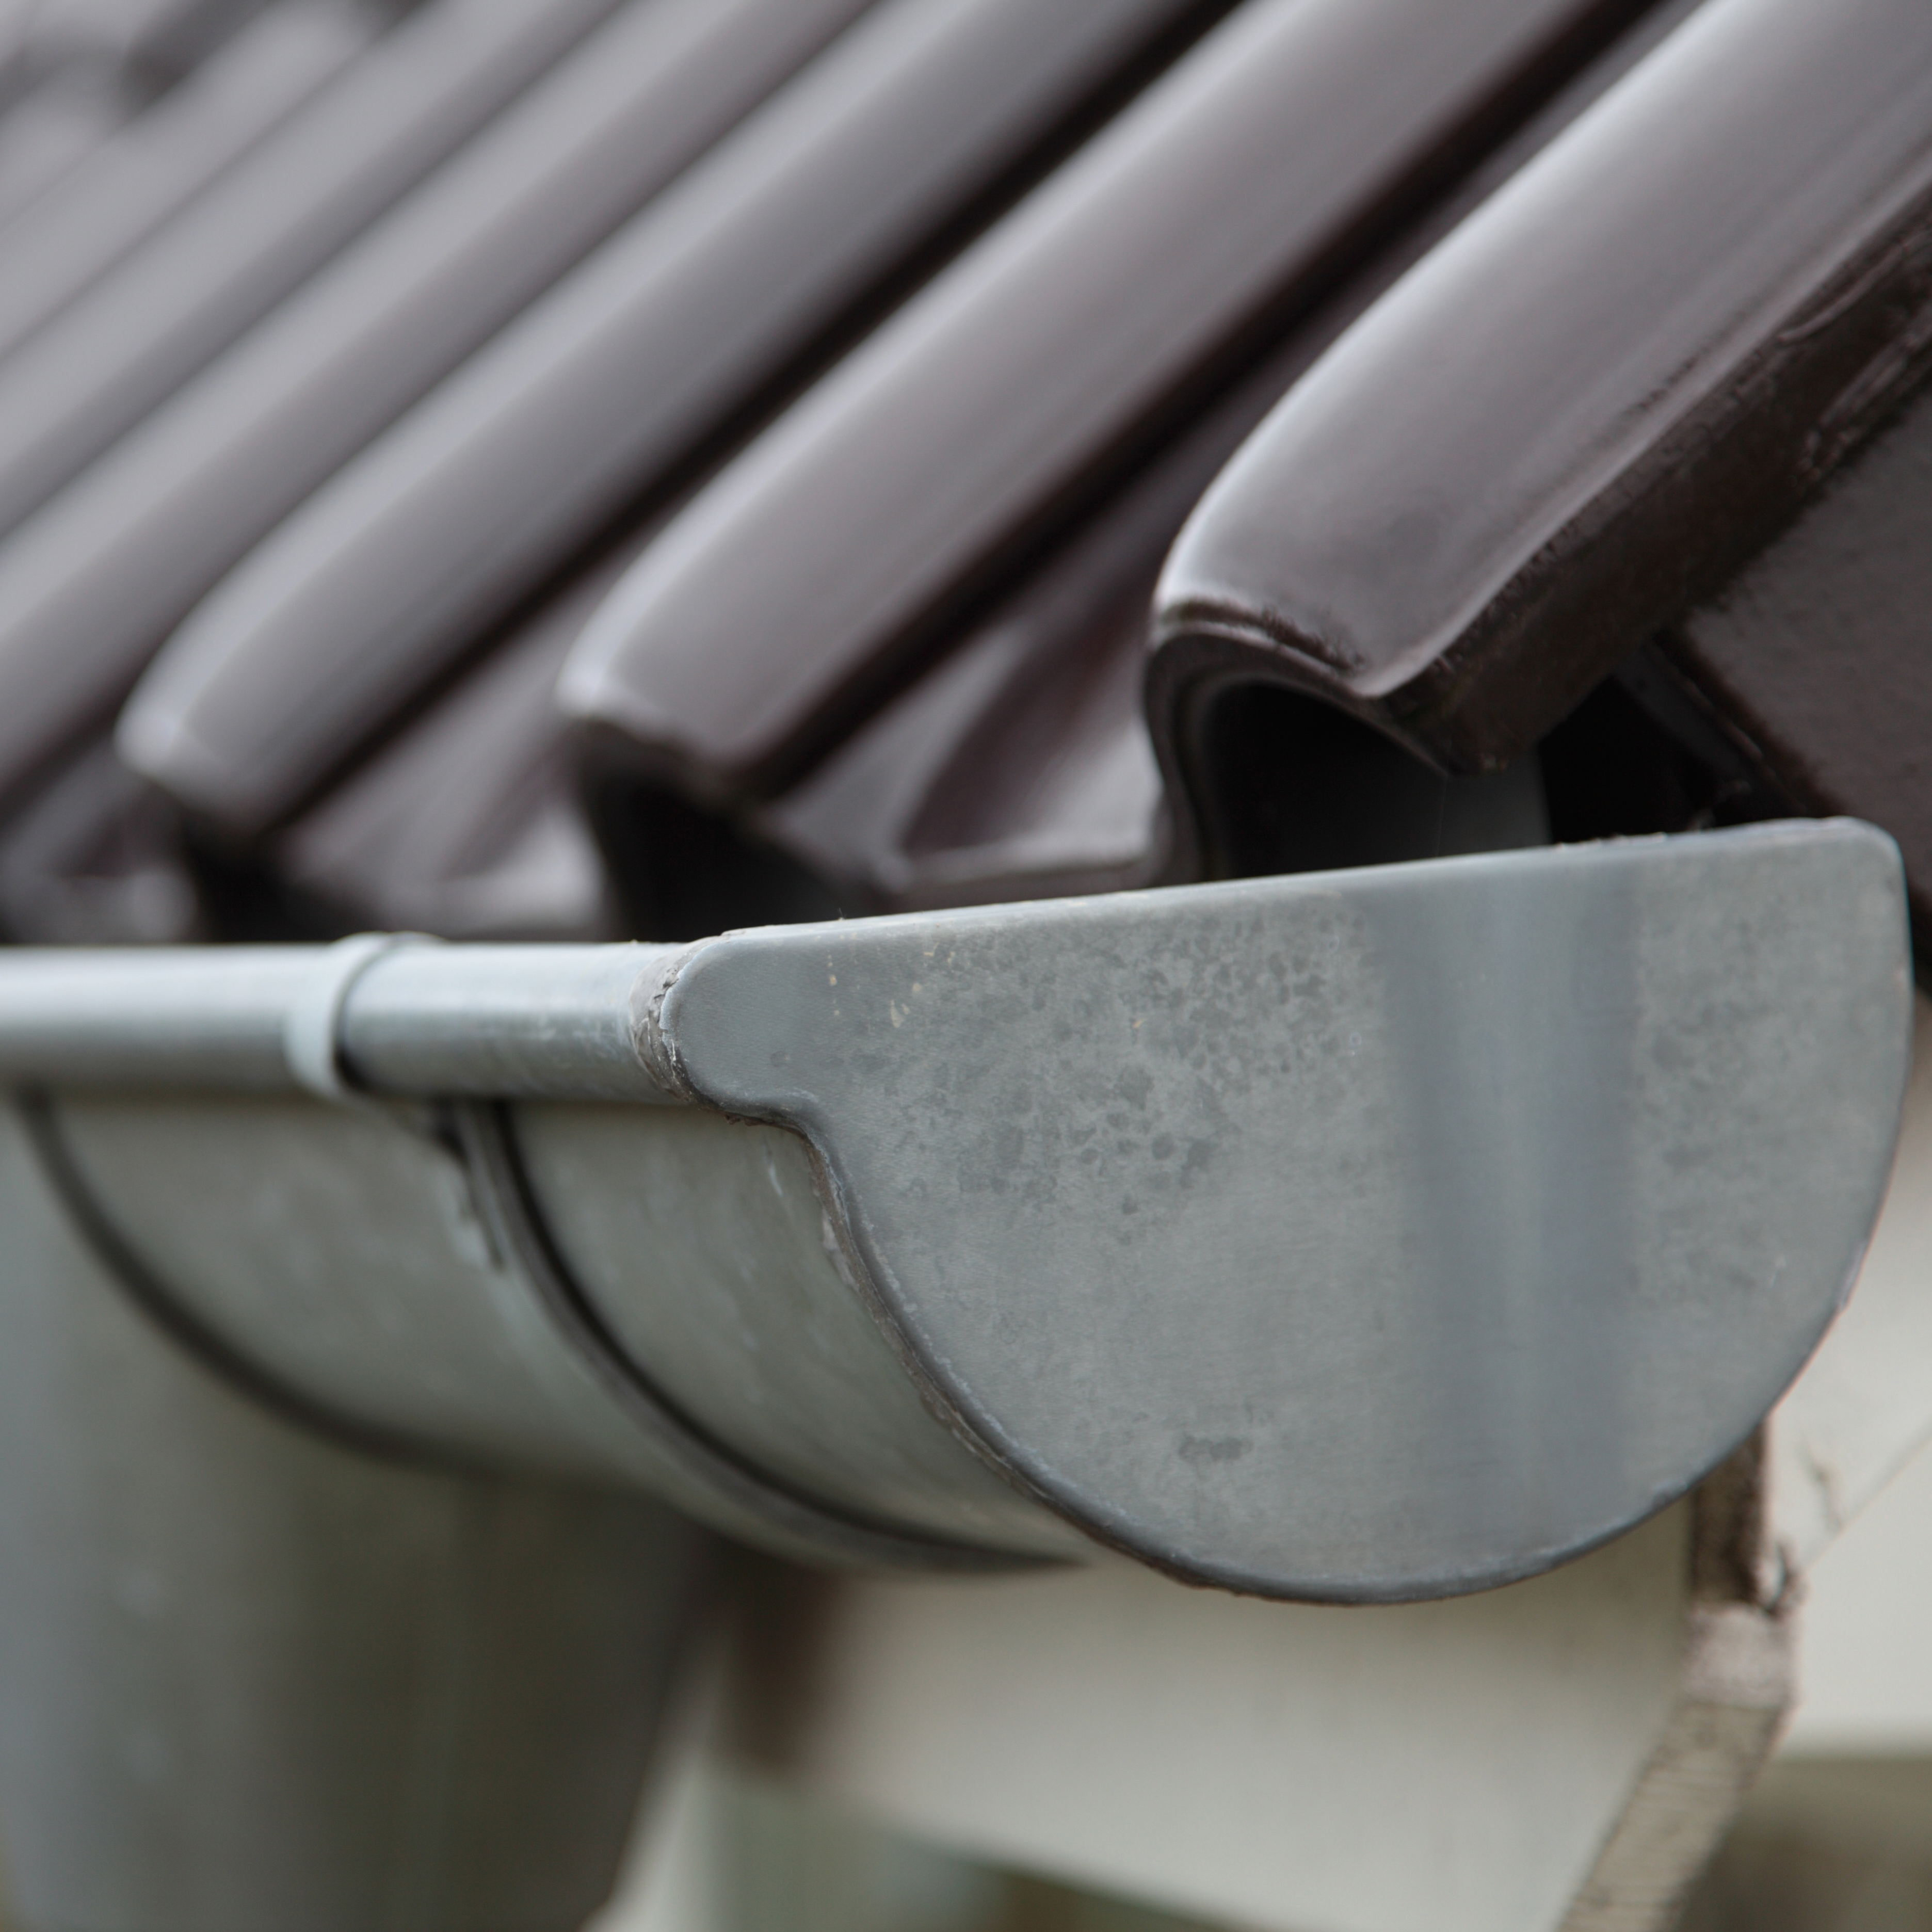 Continuous Gutter - Roof Repair - England, Arkansas